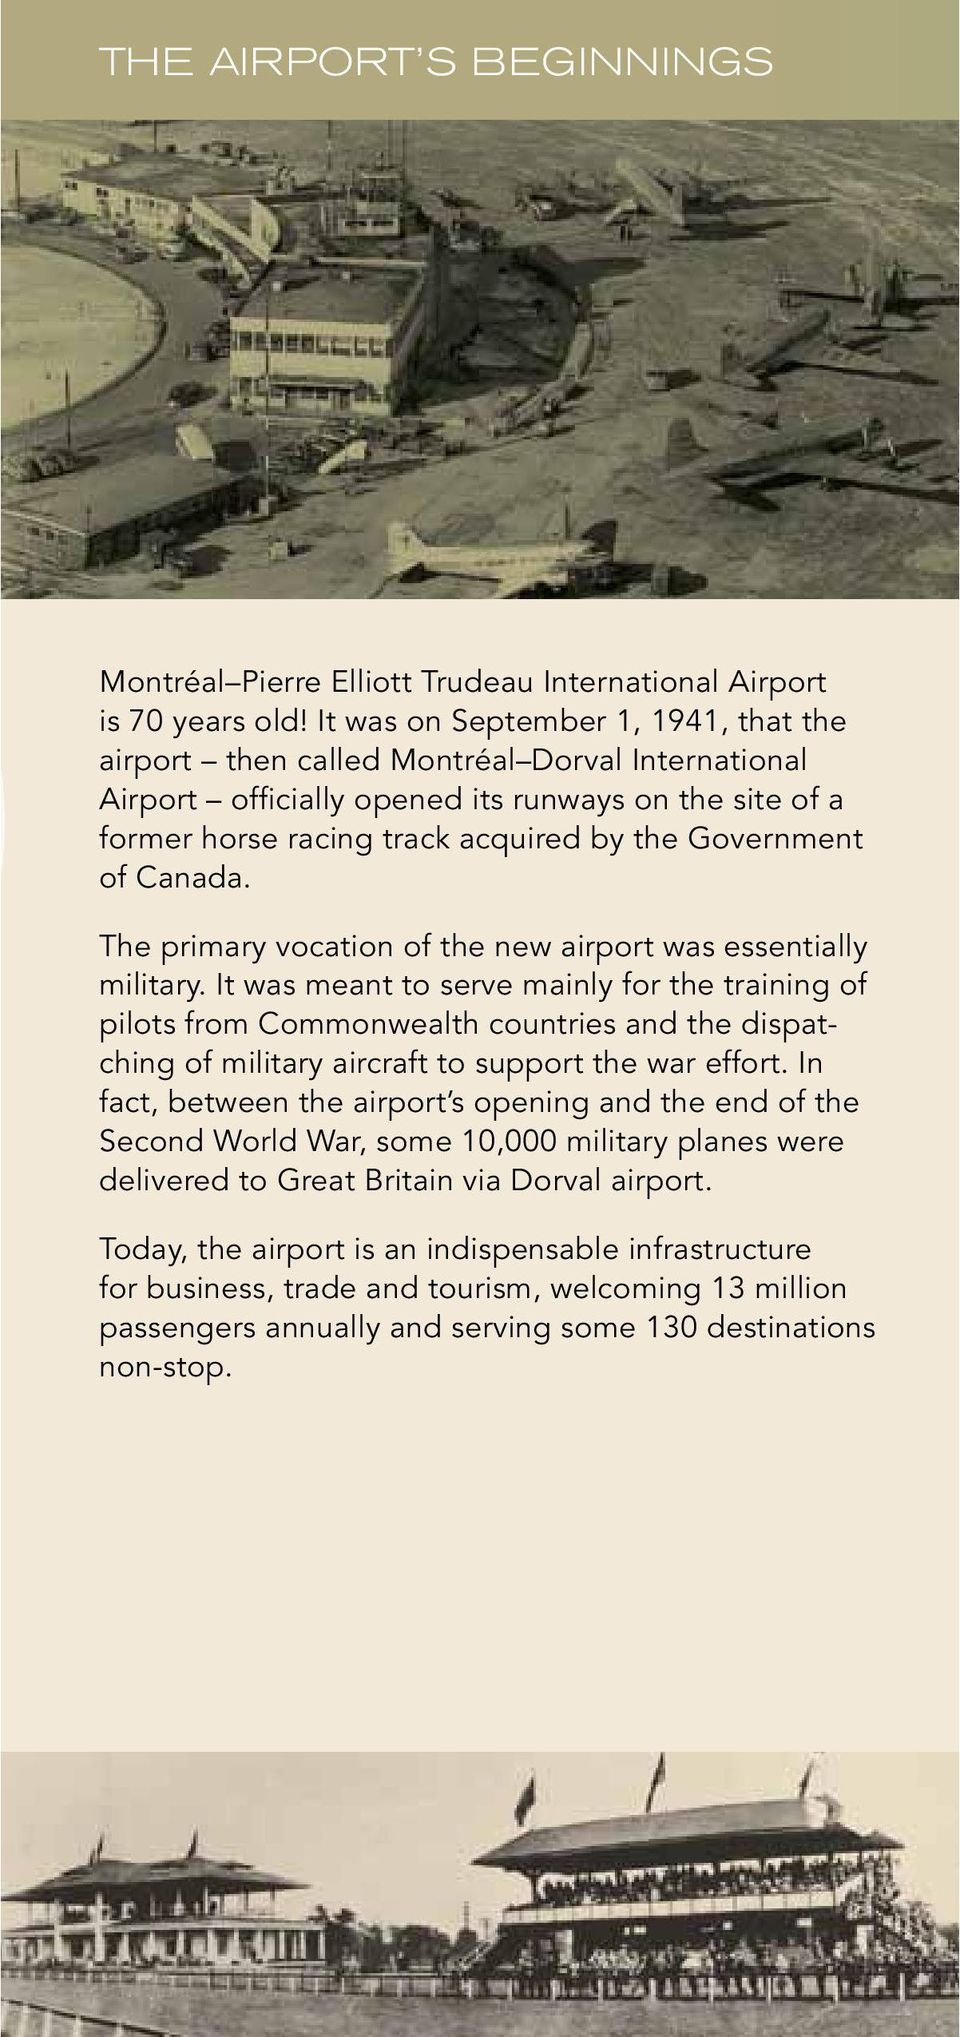 Canada. The primary vocation of the new airport was essentially military.